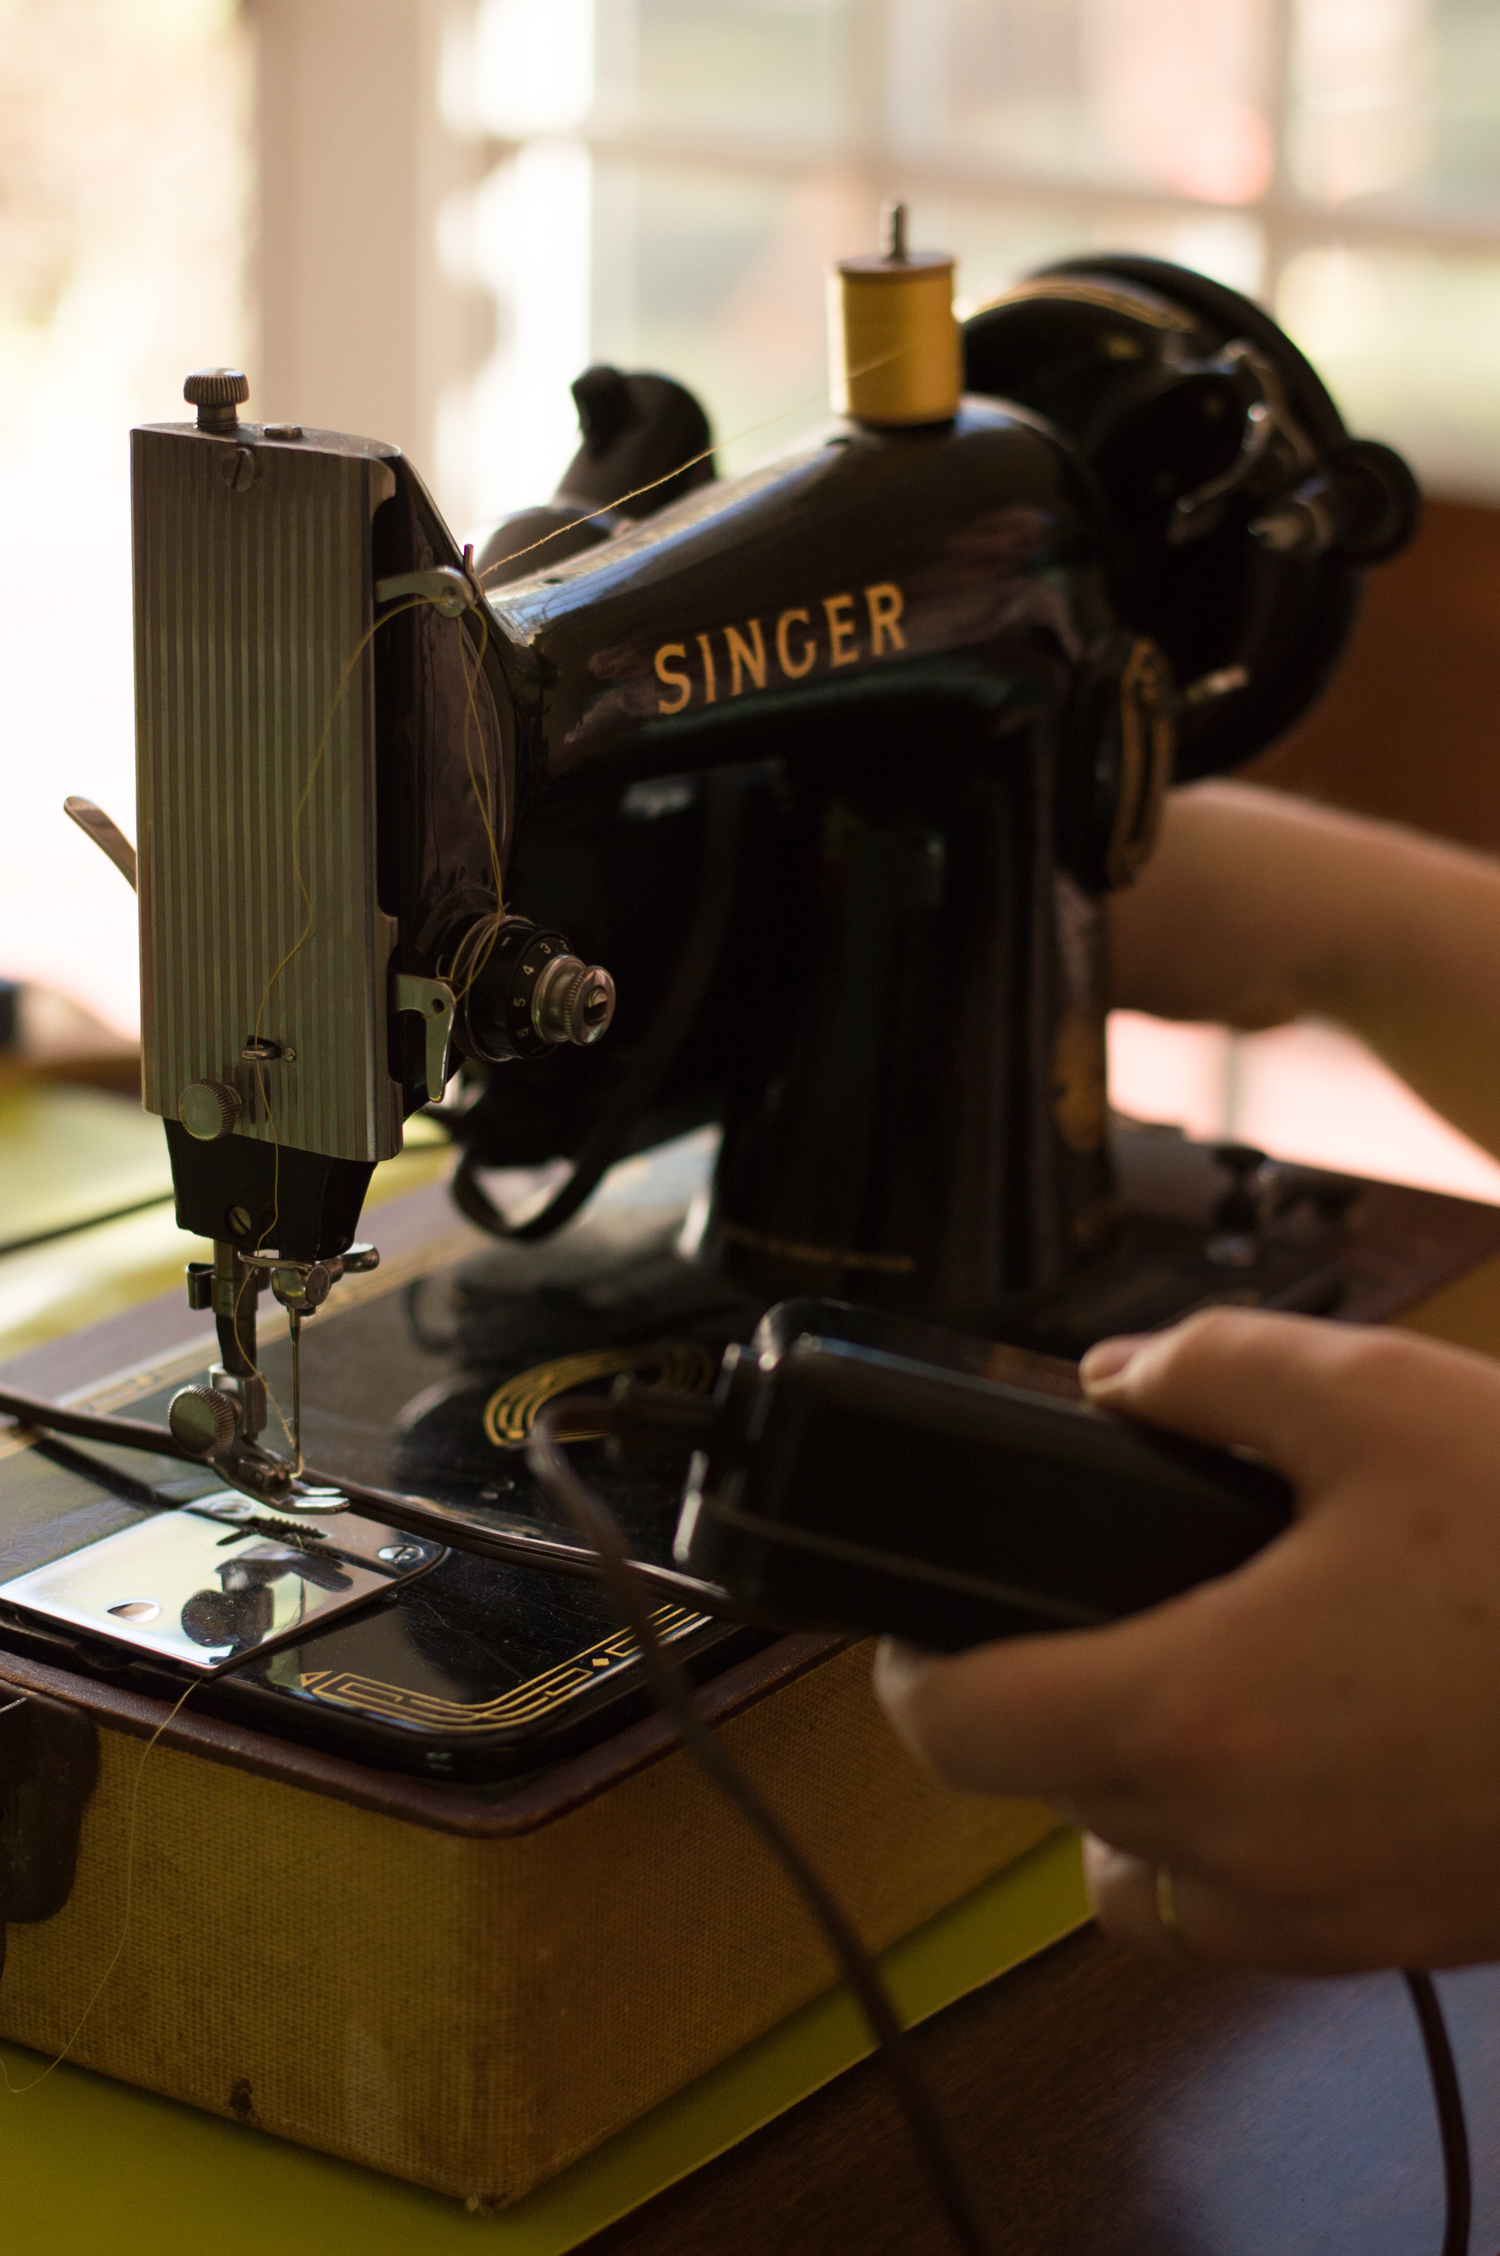 Adrian's vintage Singer, which doesn't only look pretty--it works!